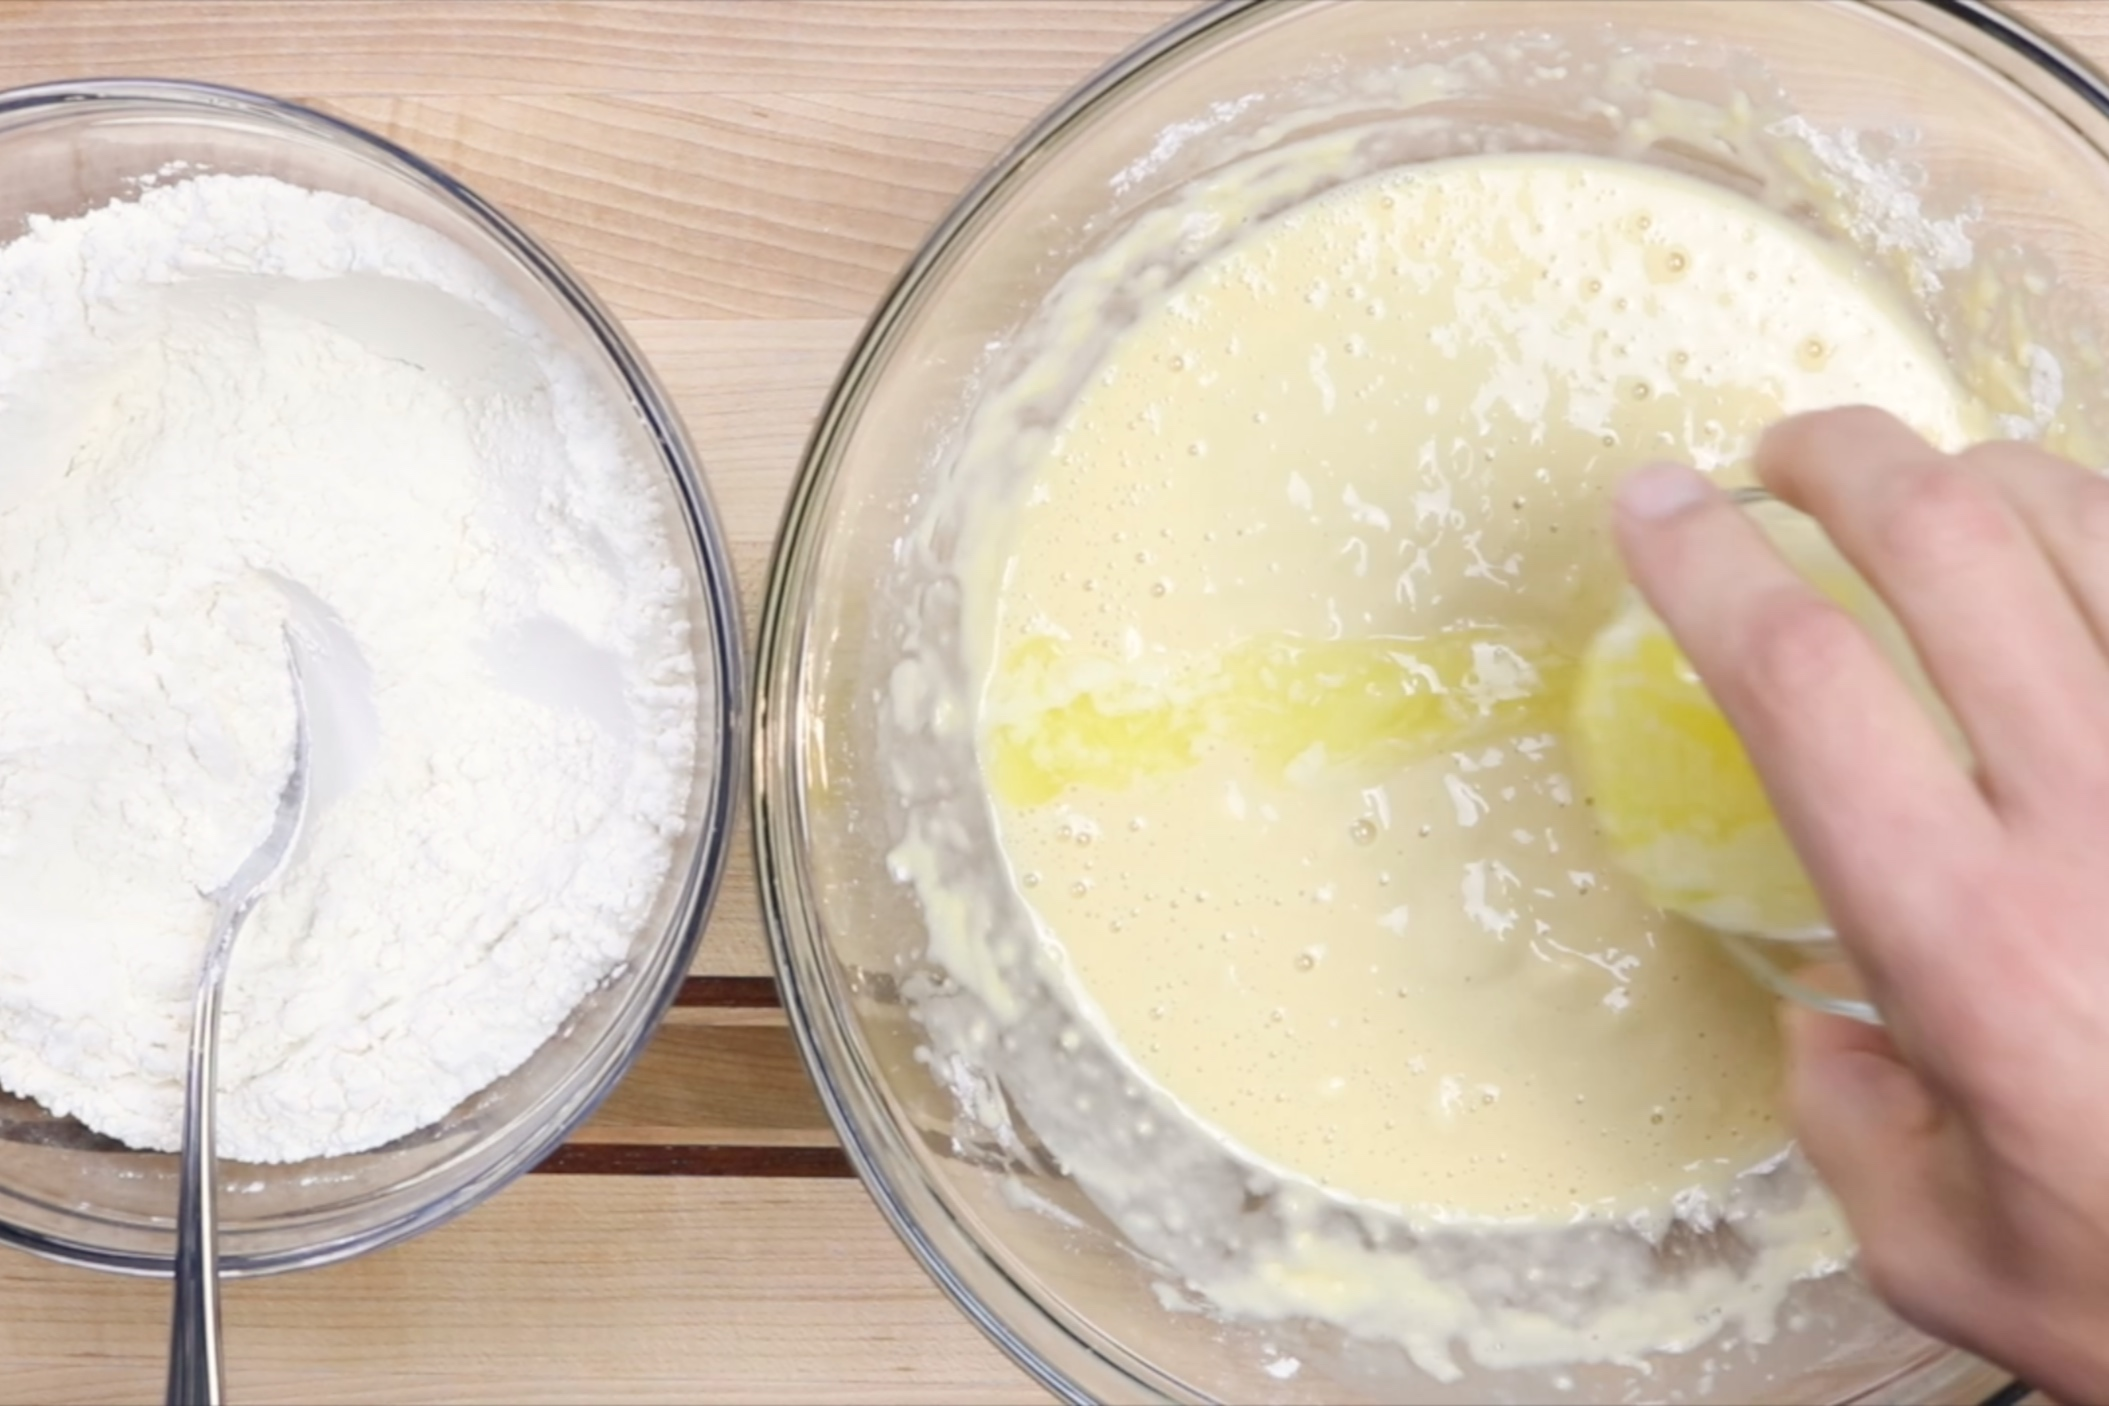 7. Add melted butter and continue mixing. -